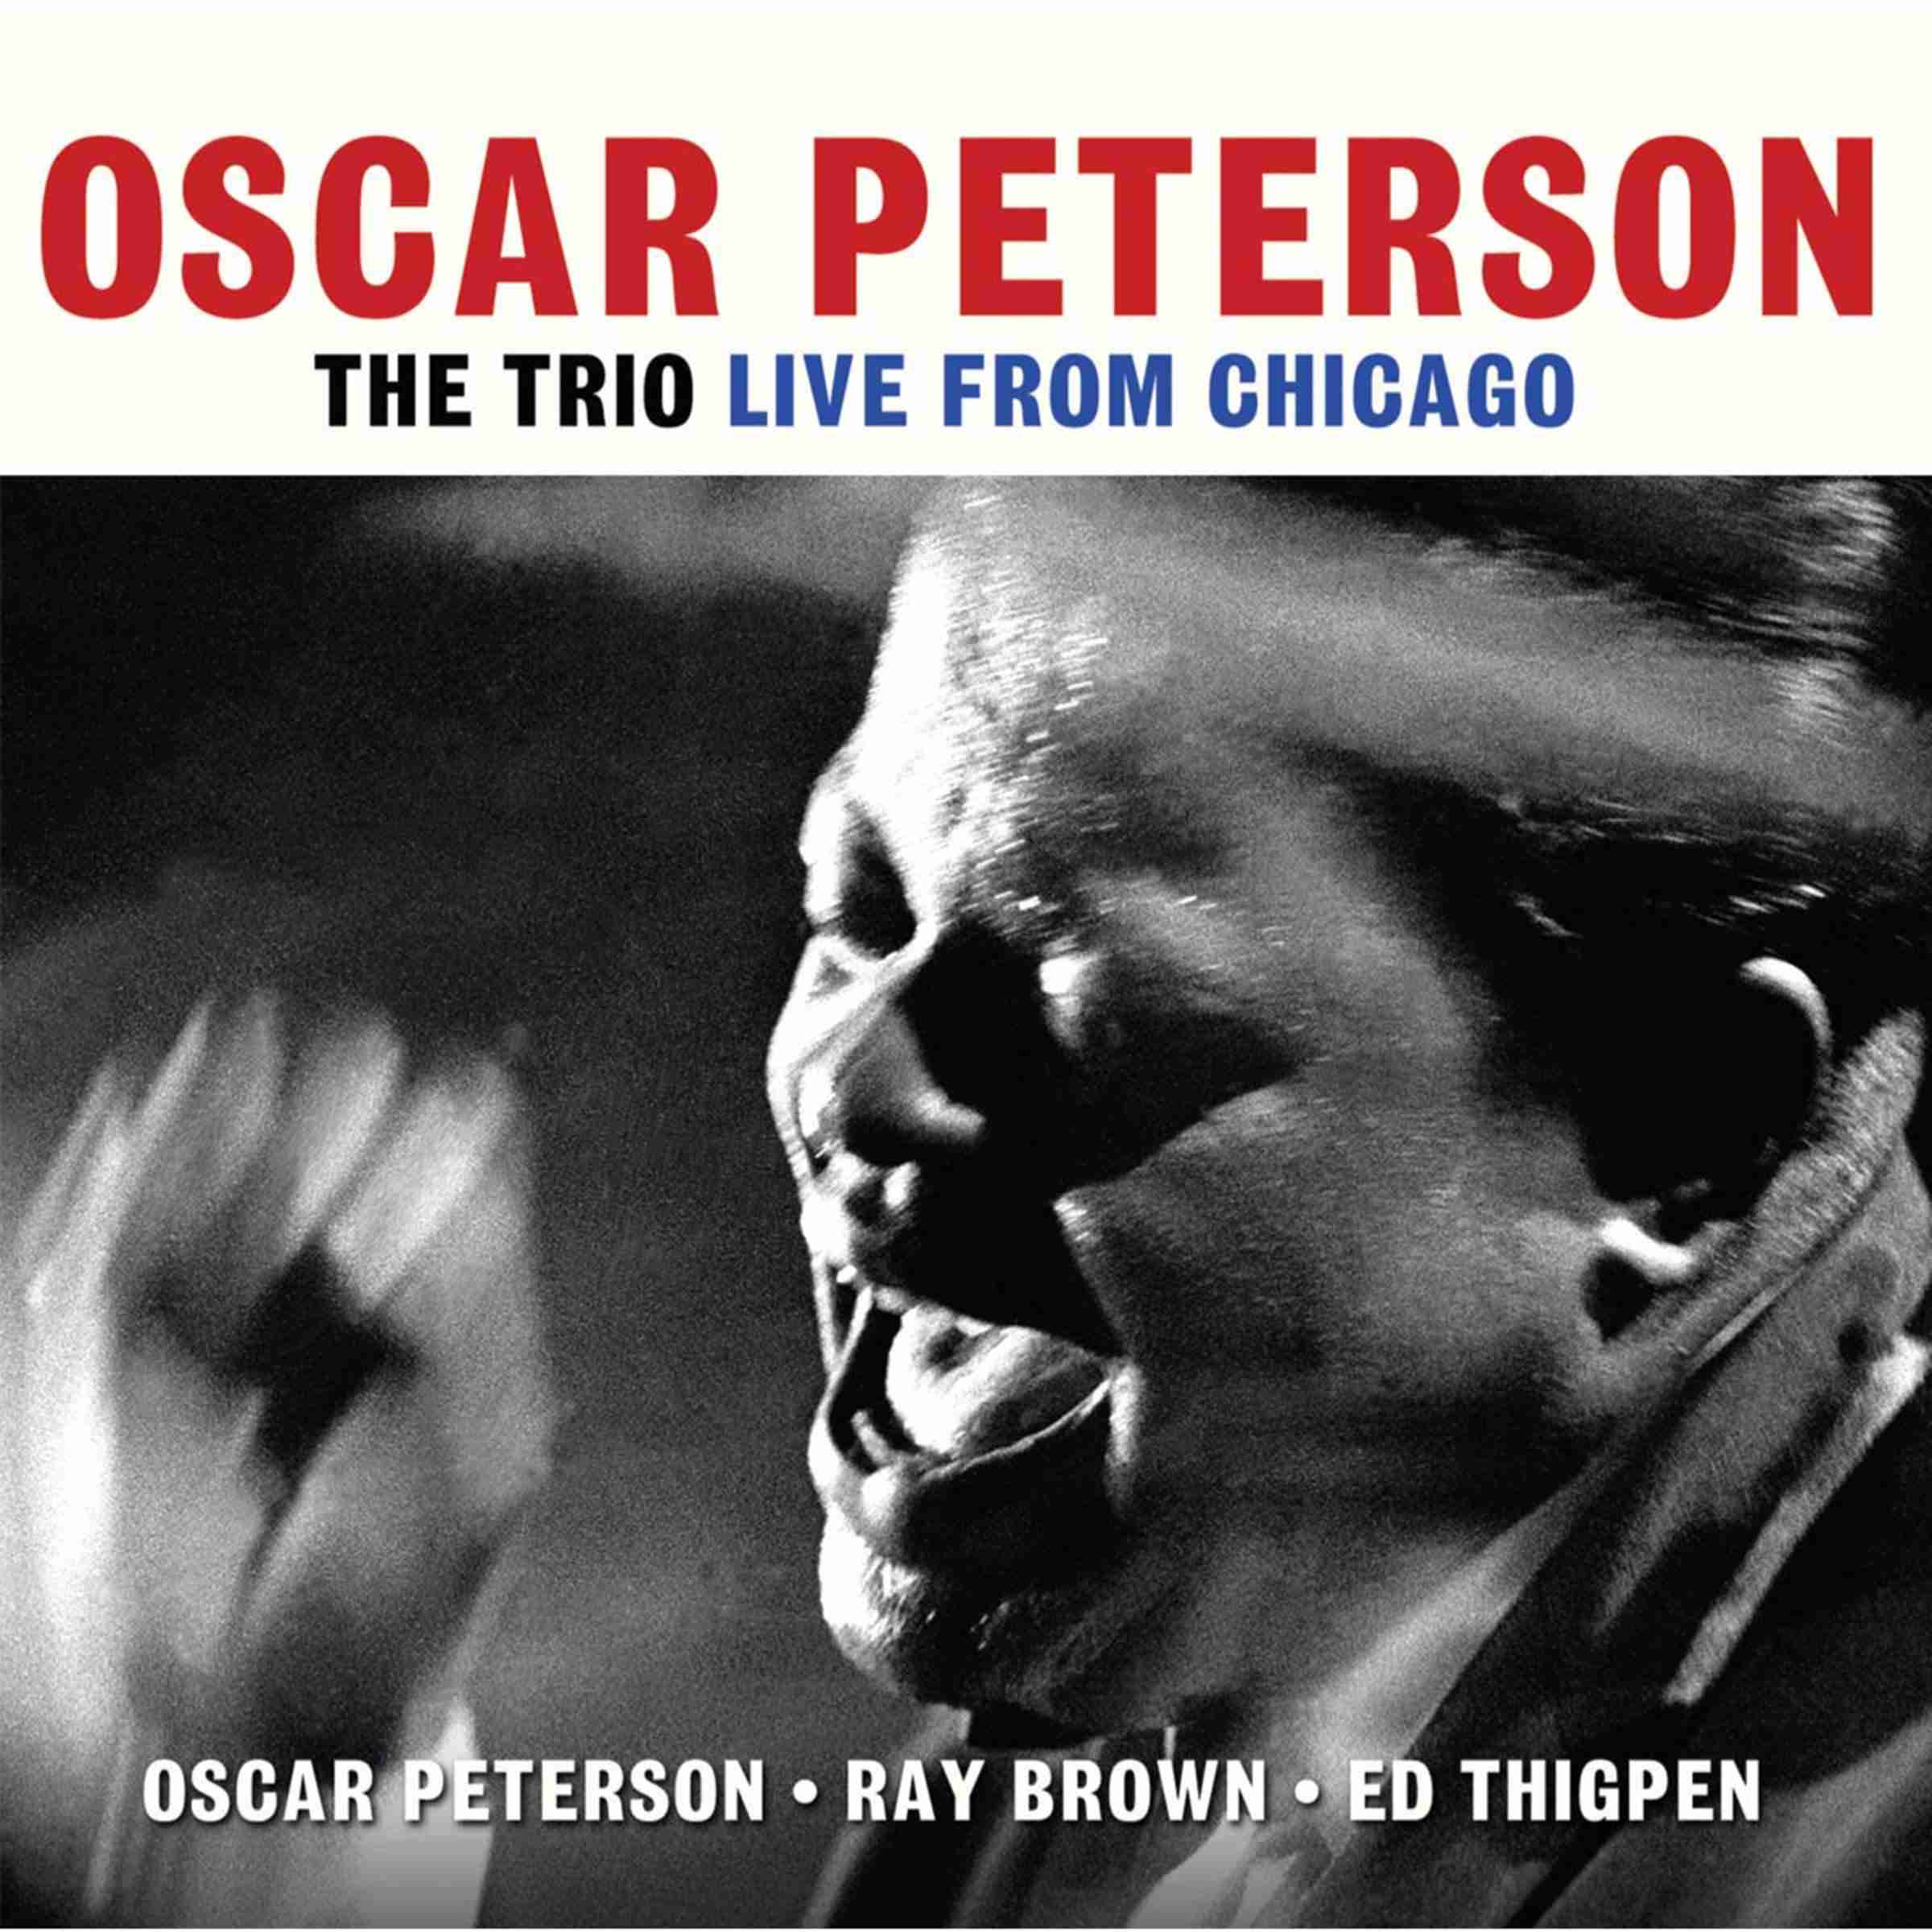 Oscar Peterson Trio - The Trio Live from Chicago (Not Now Music) [Full Album] - YouTube